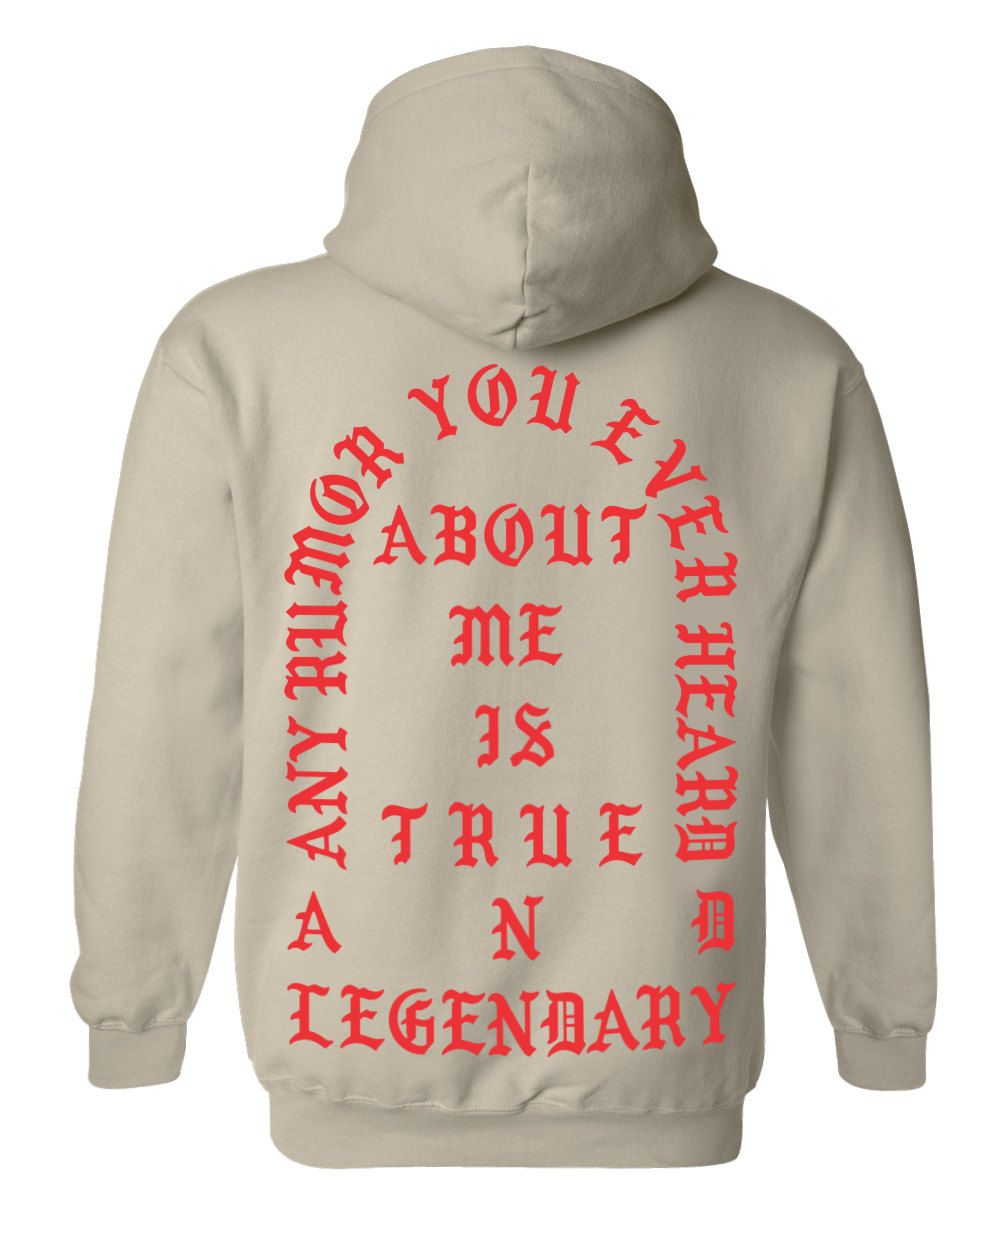 buy online e0692 53694 Any Rumor You Heard About Me Is True And Legendary. The